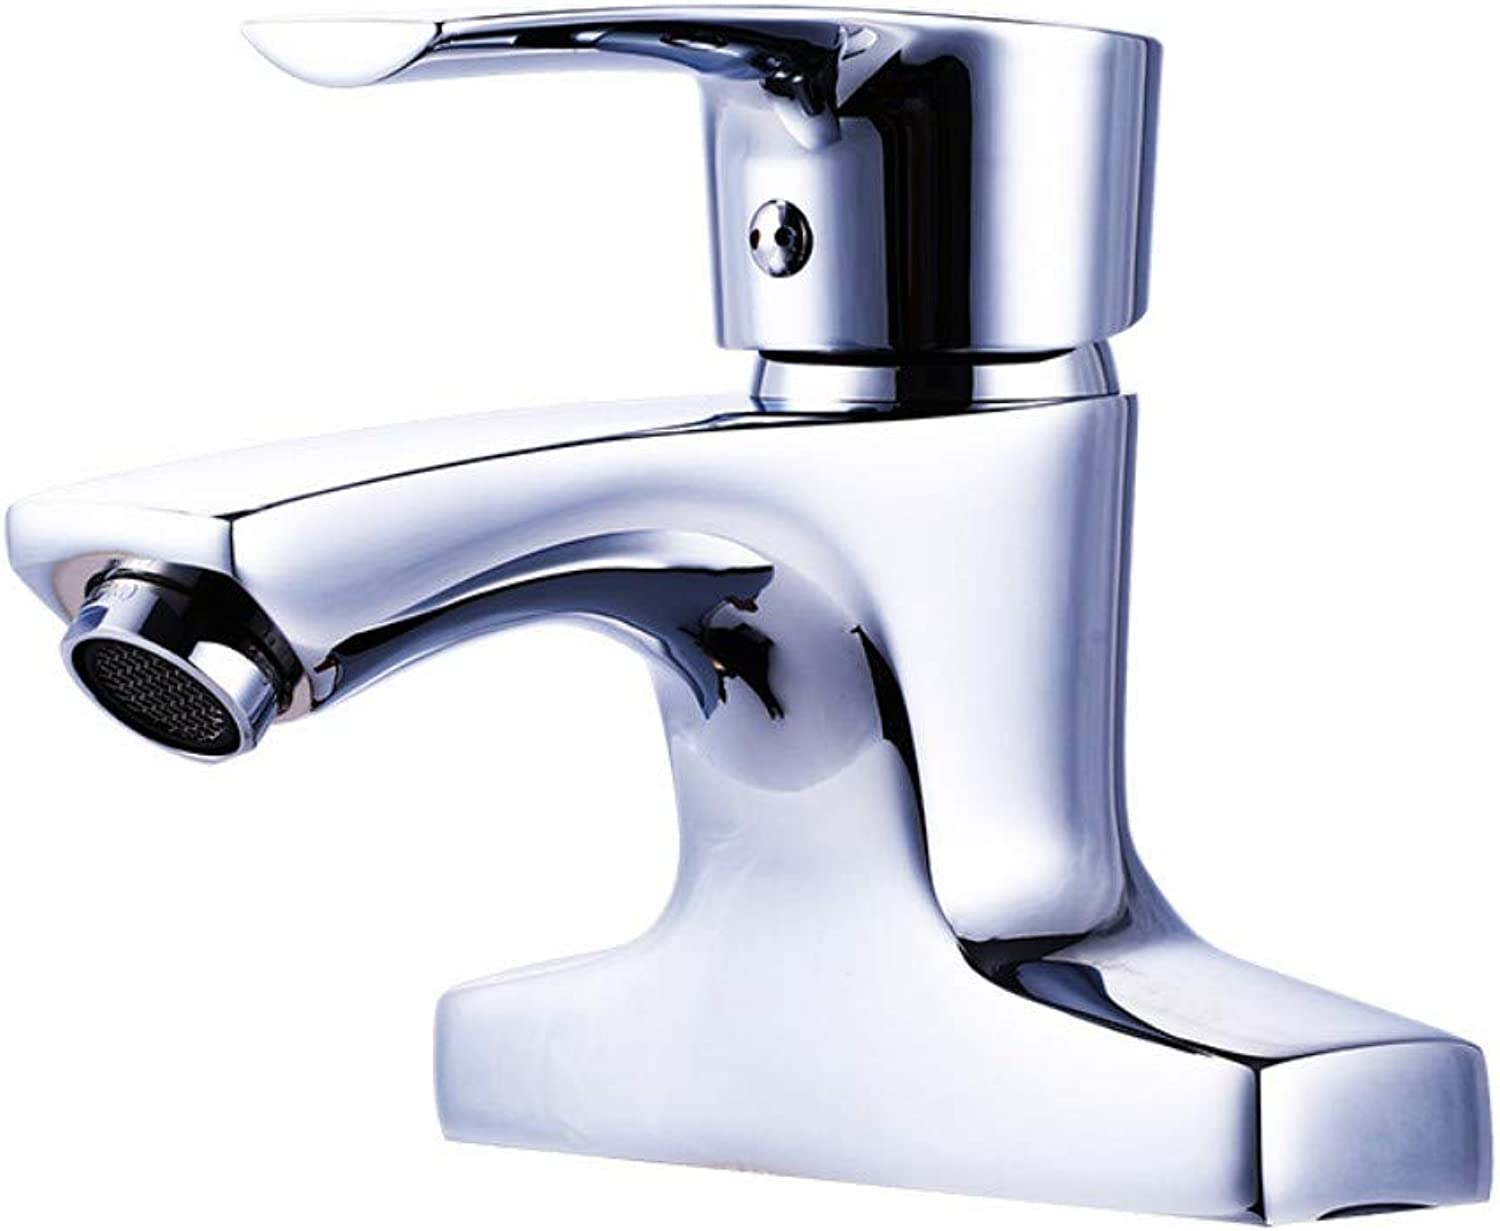 Bathroom Brass Basin Hot and Cold Faucet On The Wash Basin Double Mixing Valve Basin Faucet